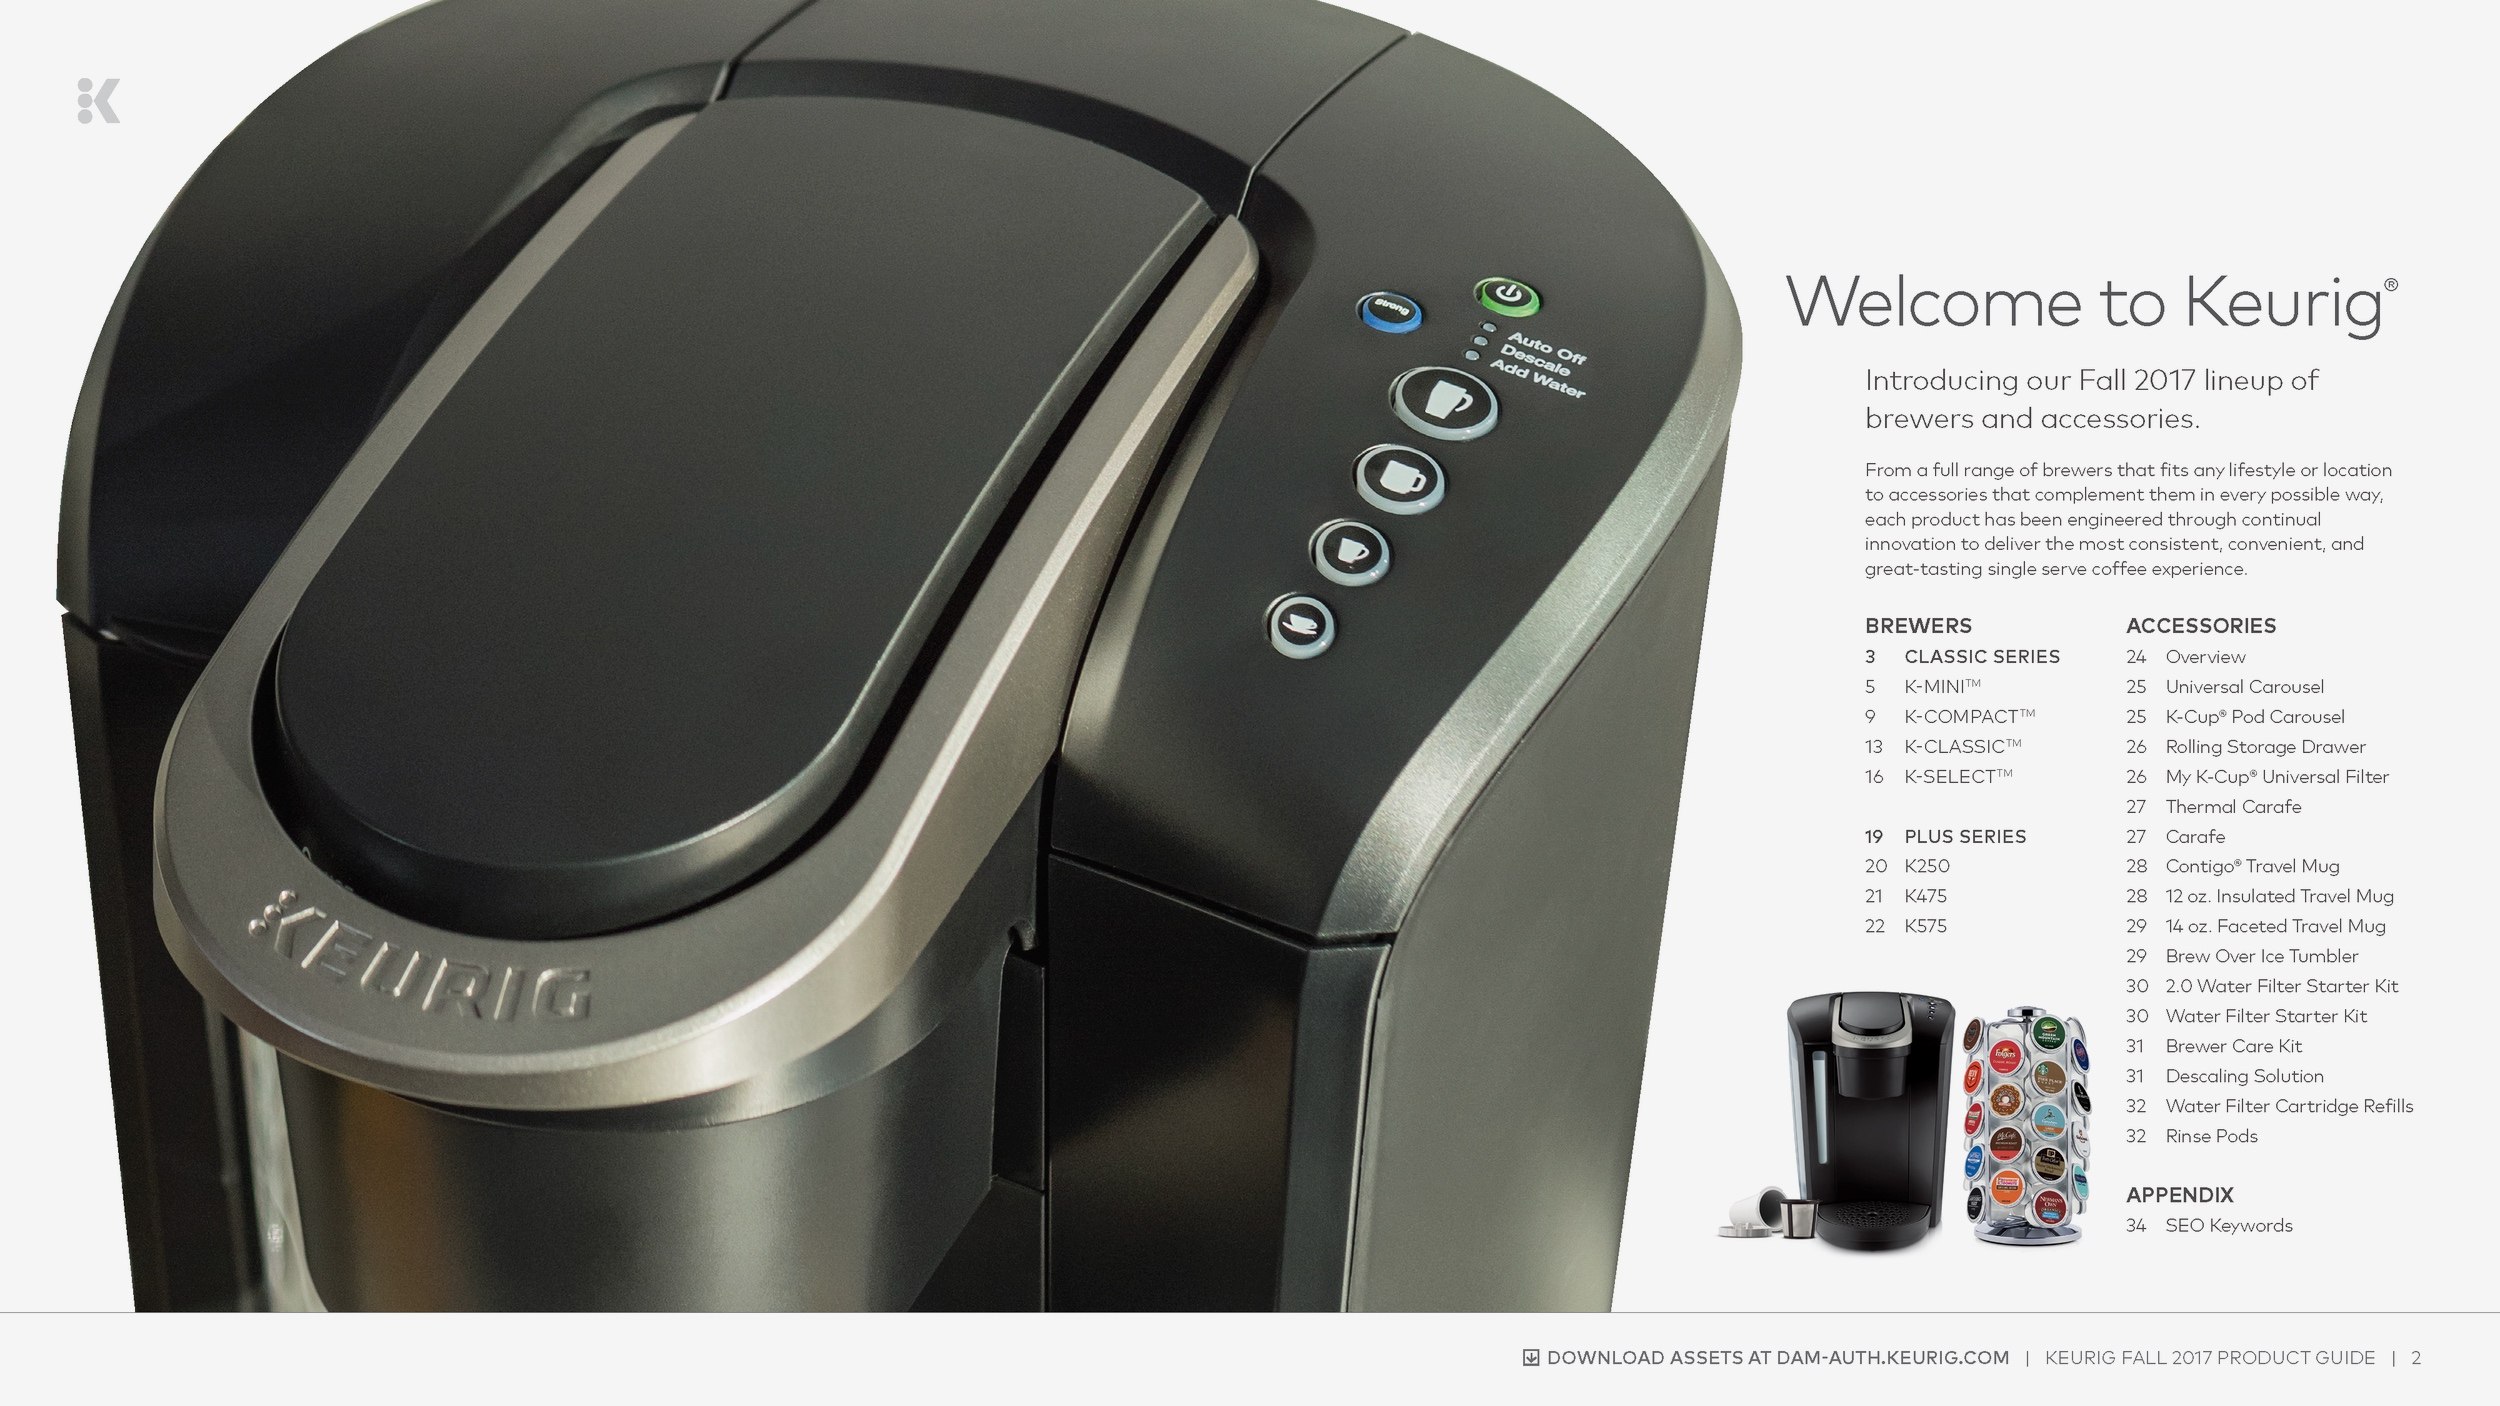 keurig_product_guide_F17_R8_Page_02.png